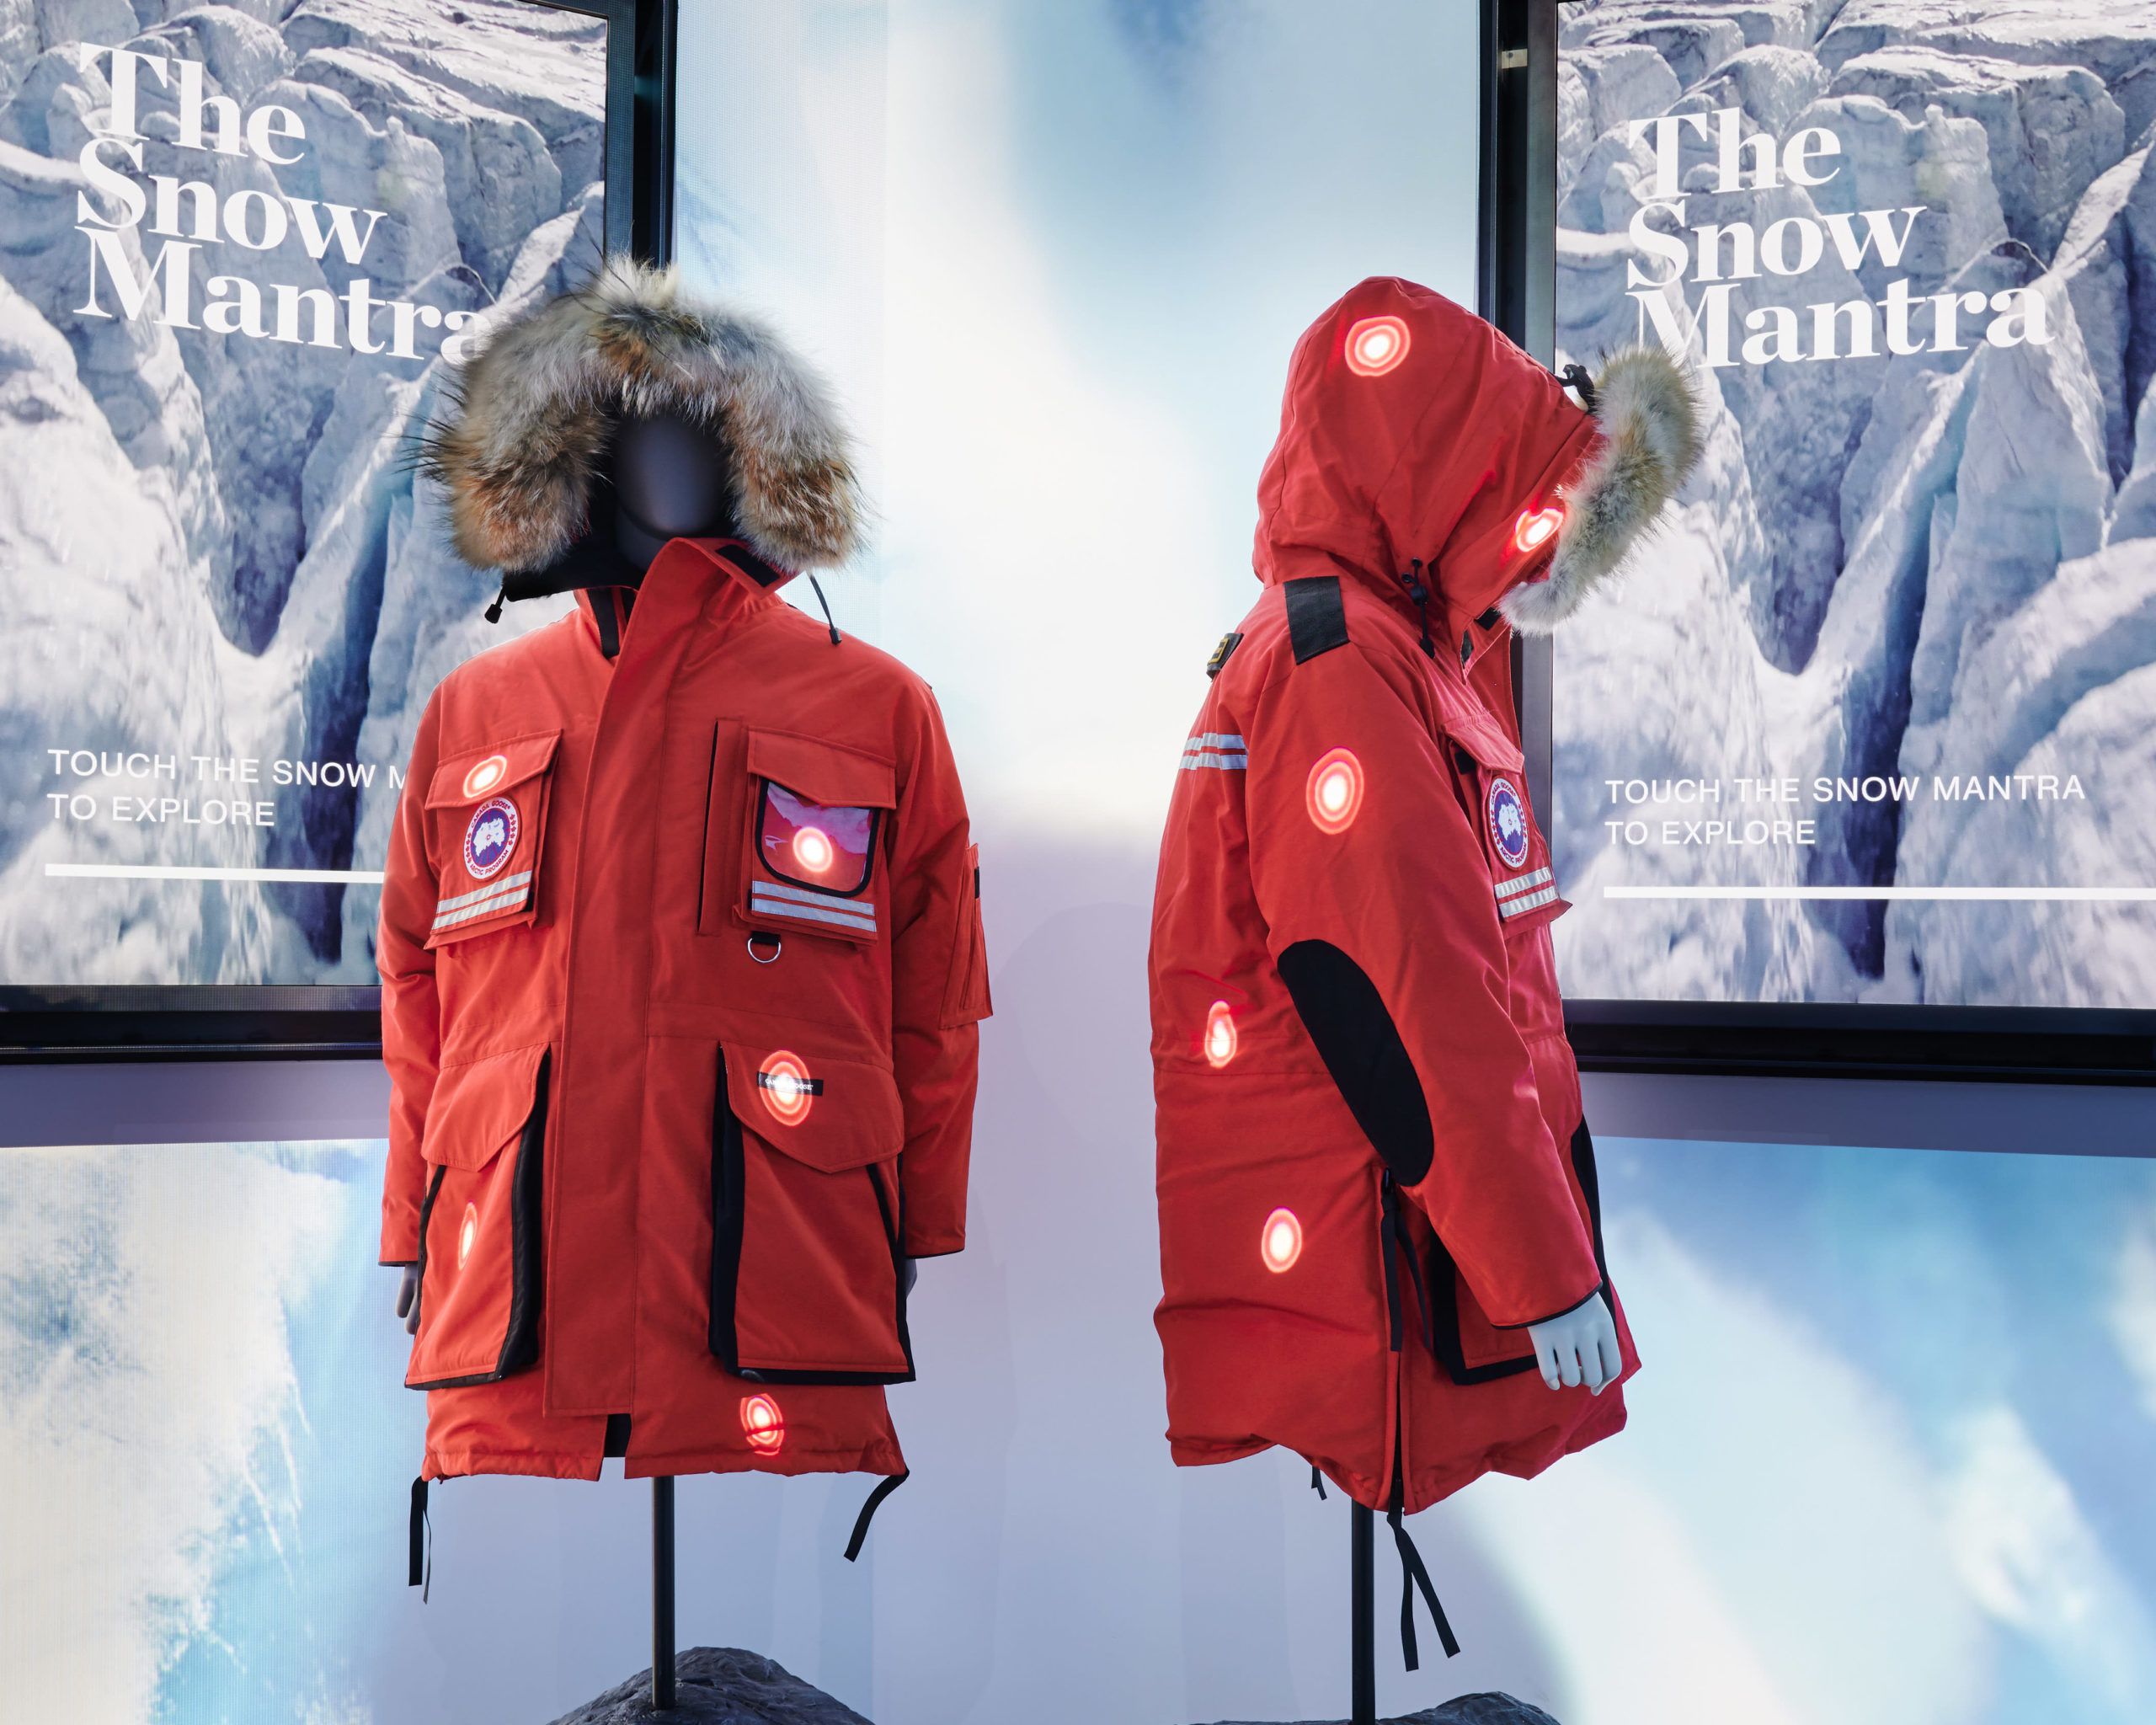 Canada Goose CEO says experiential retailer is 'a break from the madness'